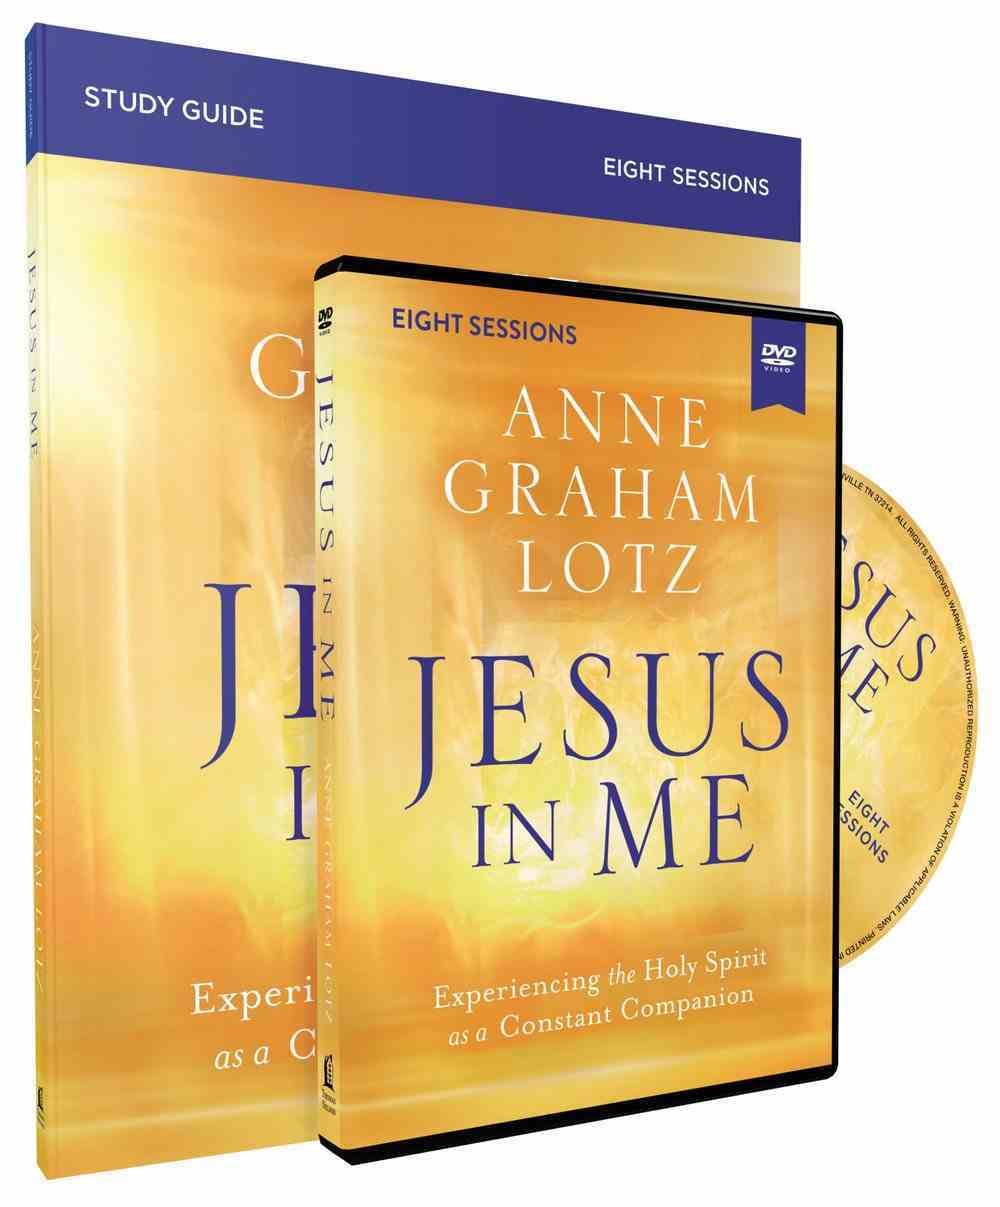 Jesus in Me: Experiencing the Holy Spirit as a Constant Companion (Study Guide And Dvd) Pack